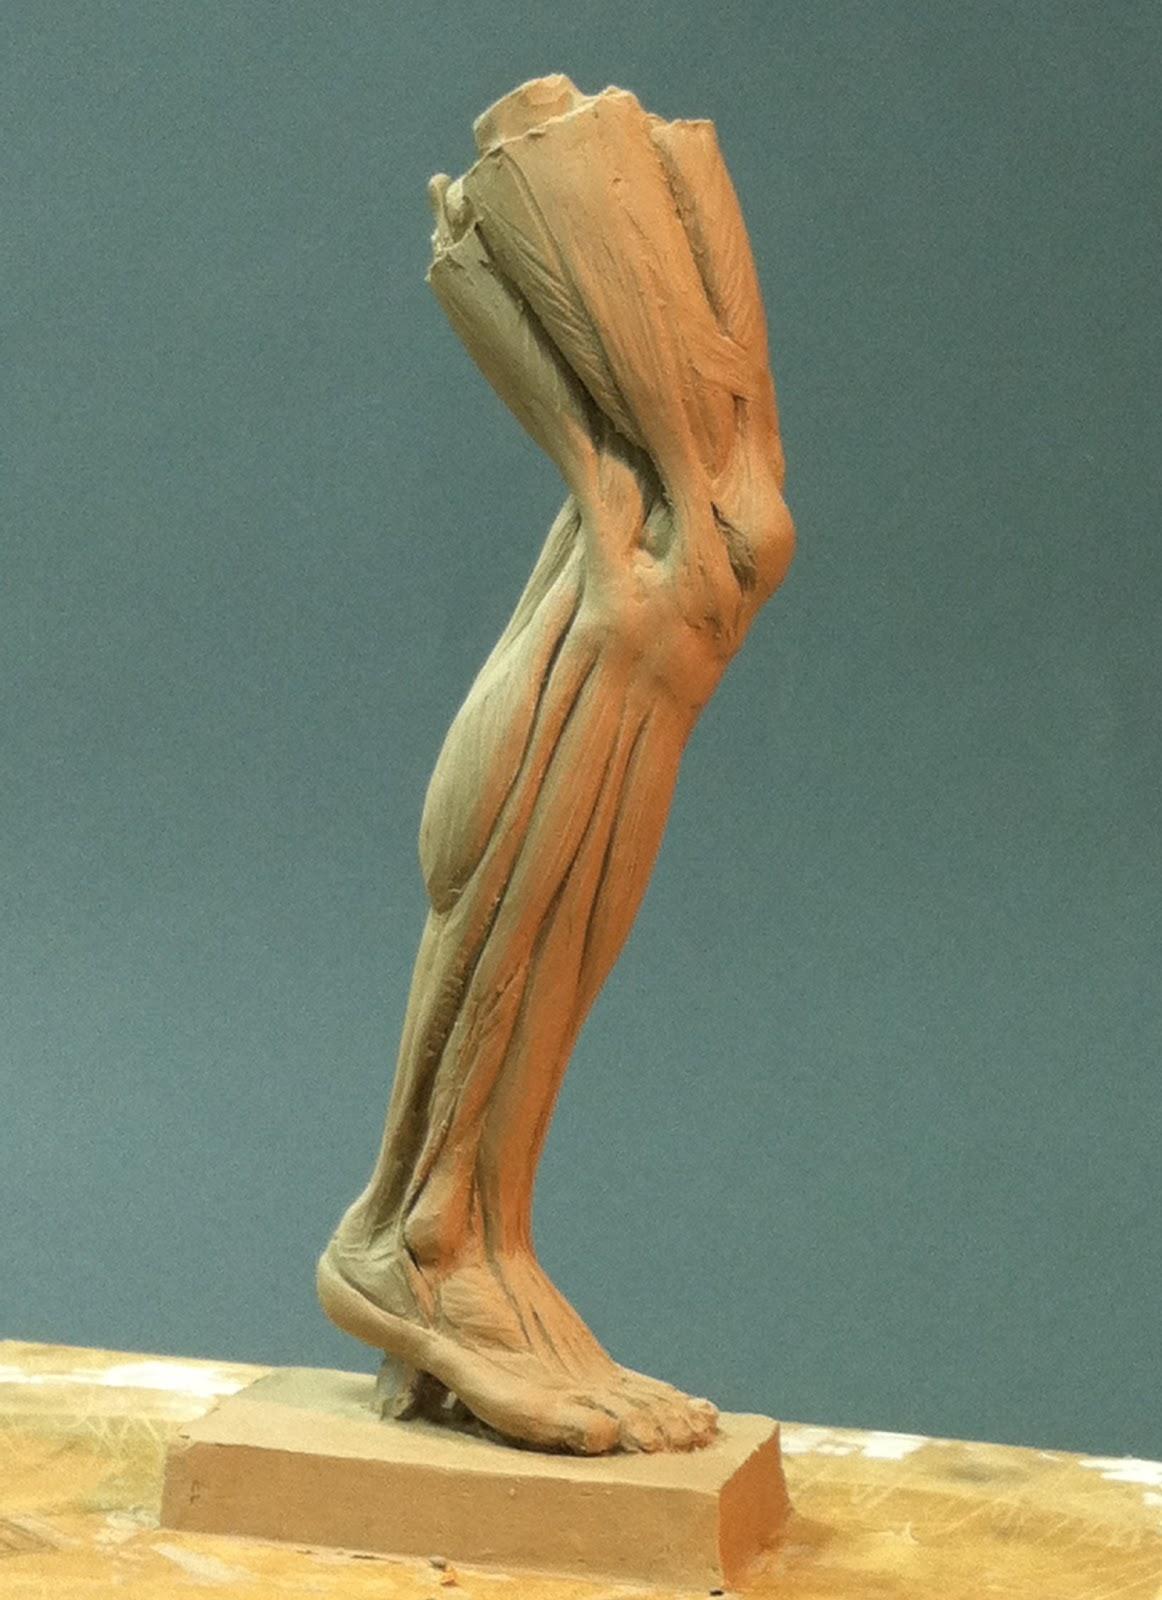 Sutton Betti Sculpture and Drawings: #38 anatomy of the lower leg